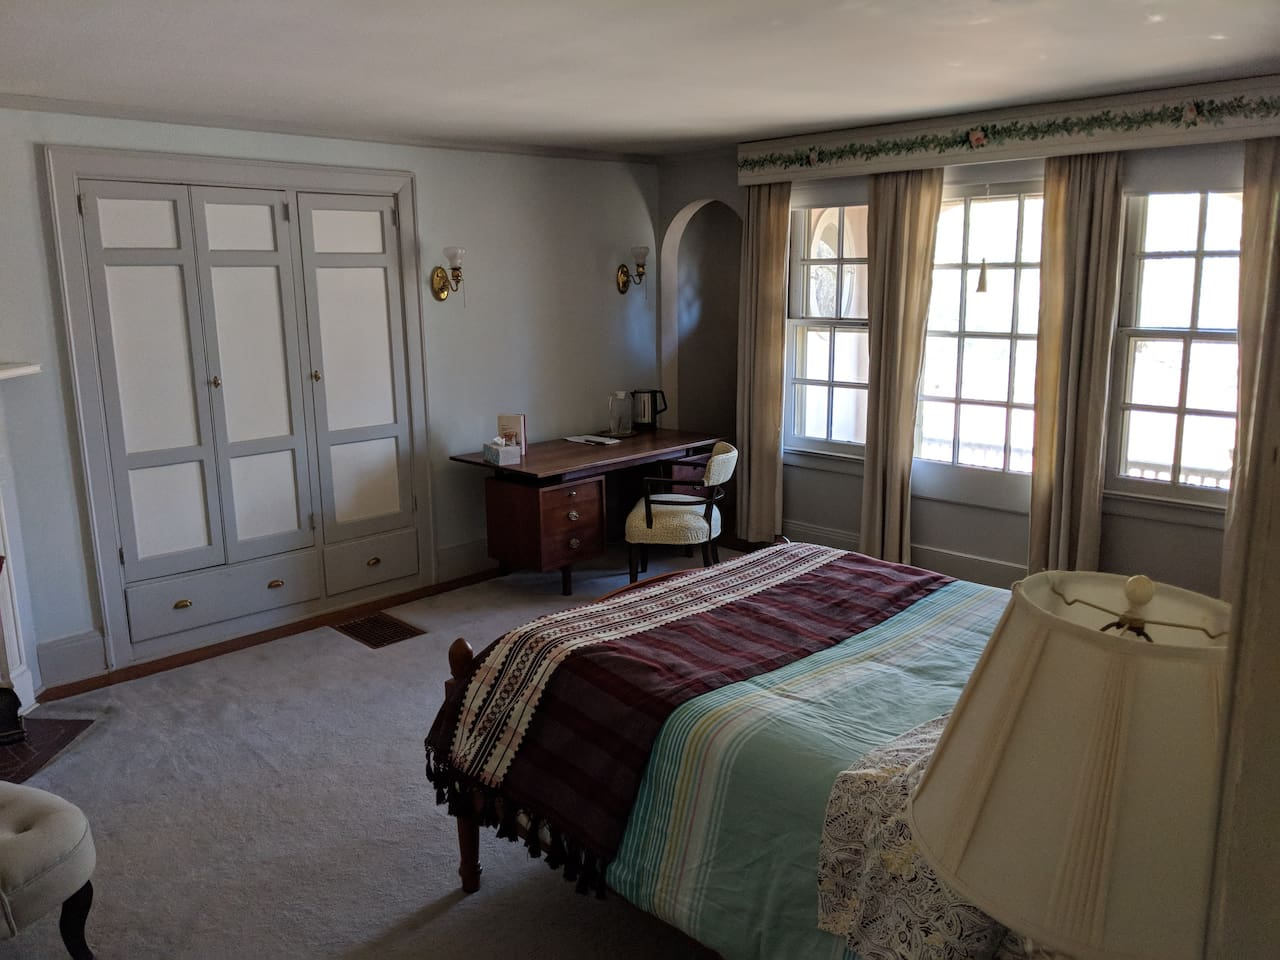 Large room with hand-painted wall murals, full bed, desk, two chairs, bookshelf and en-suite bathroom.